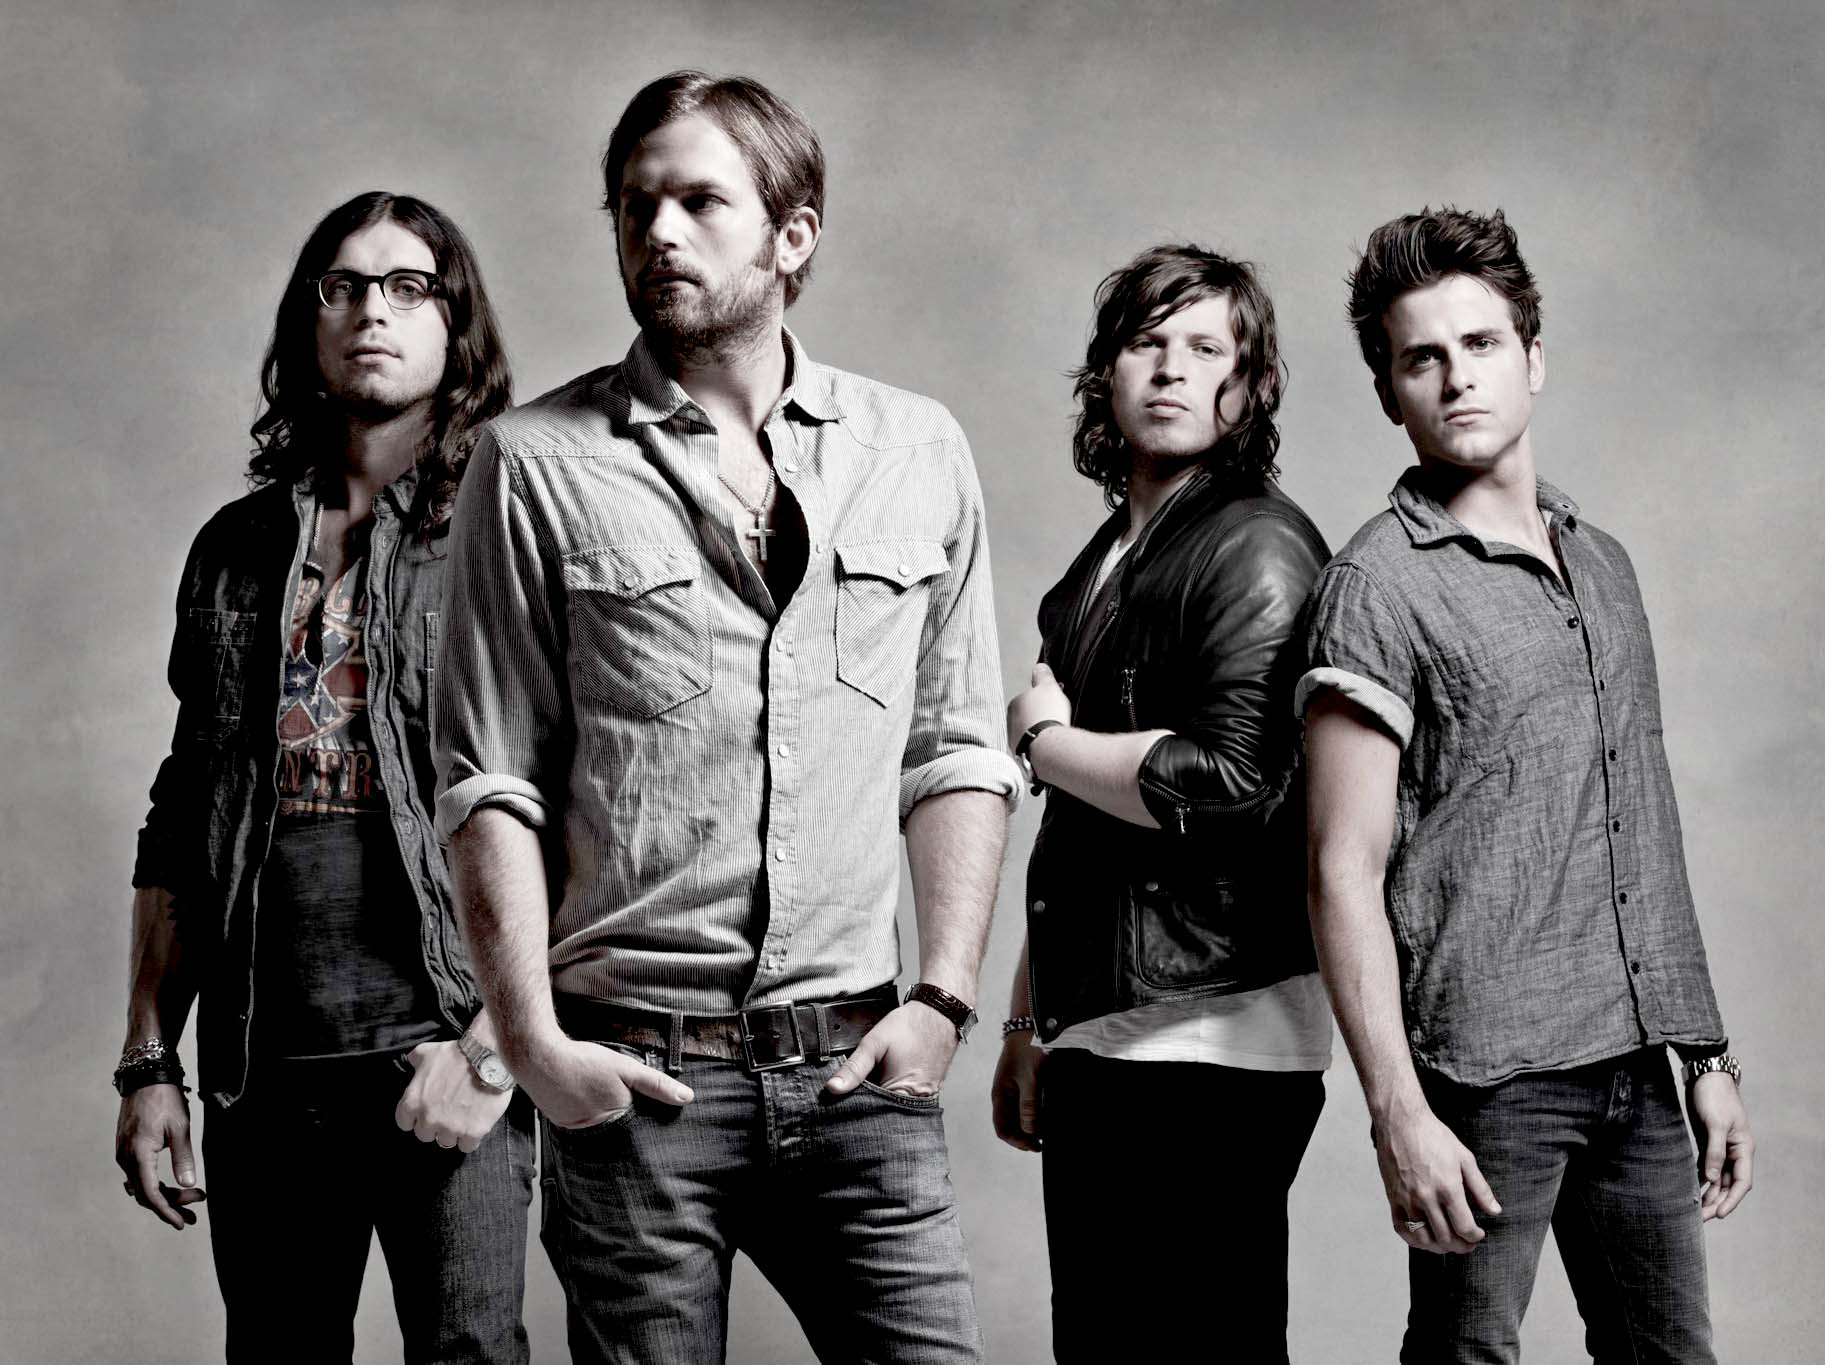 Izlazi novi album za Kings Of Leon